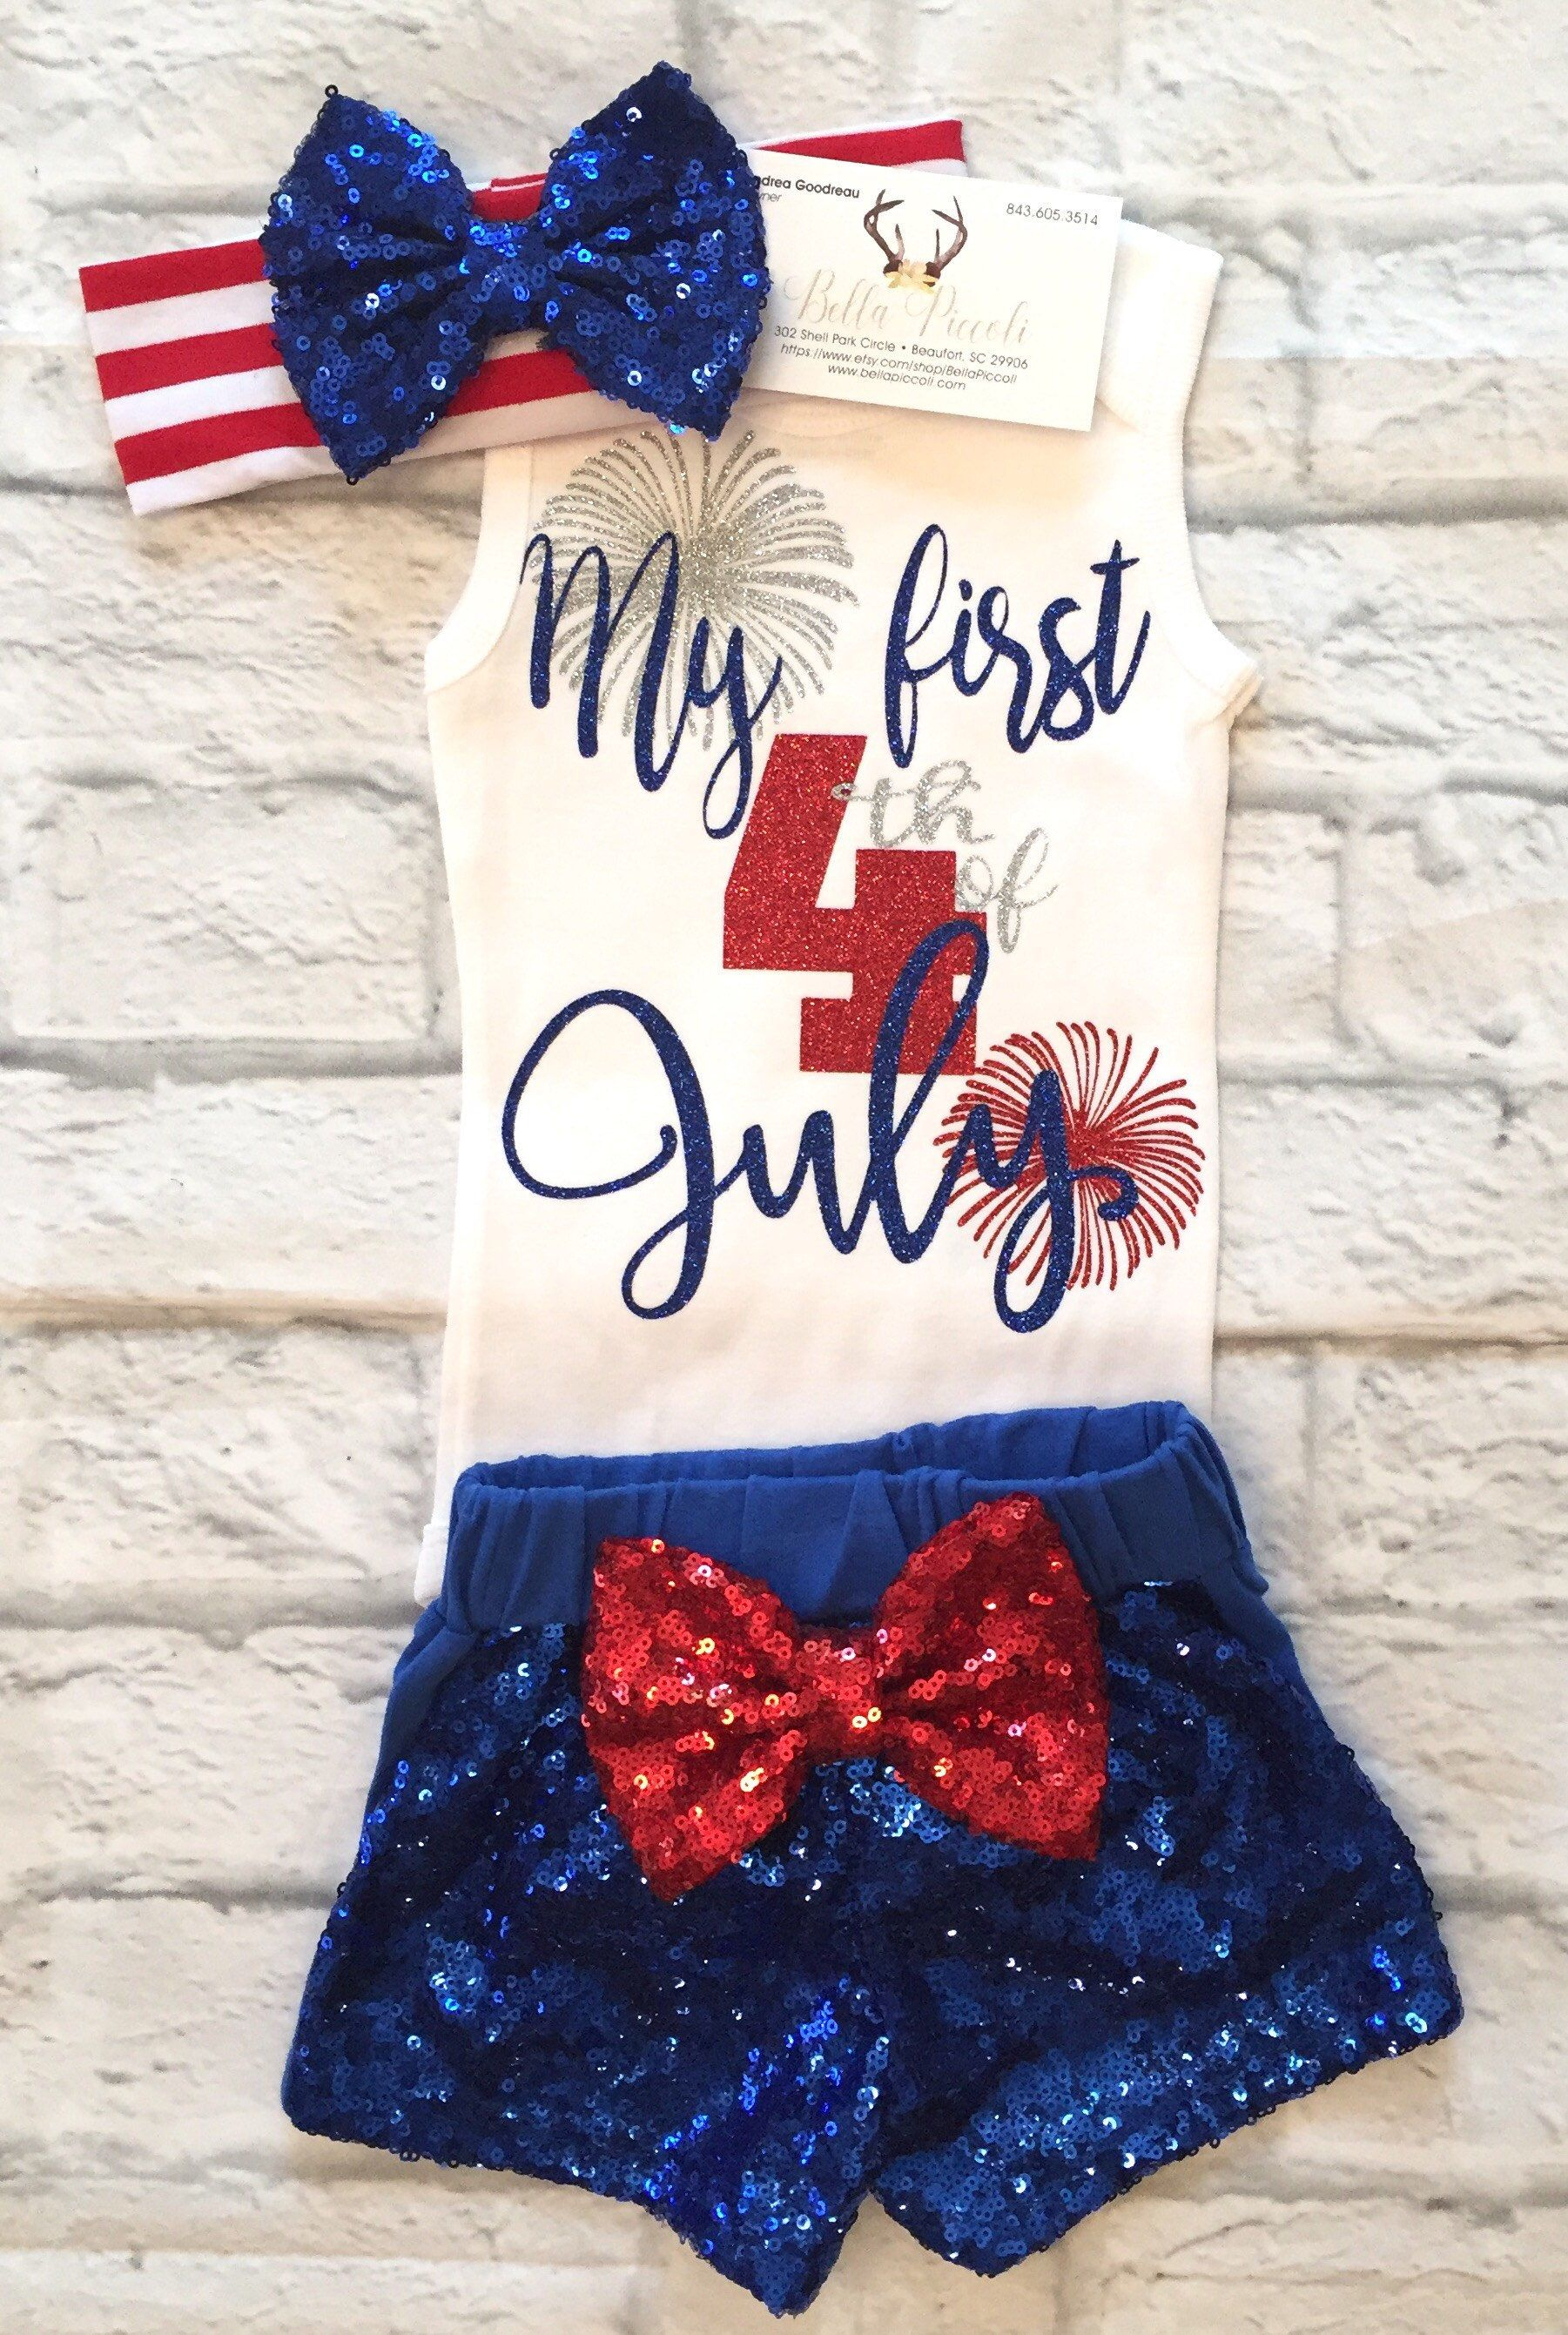 5e6a137cee96c Pin by Shana Boney on one day | Baby kids clothes, Baby girl fashion, Cute  baby clothes